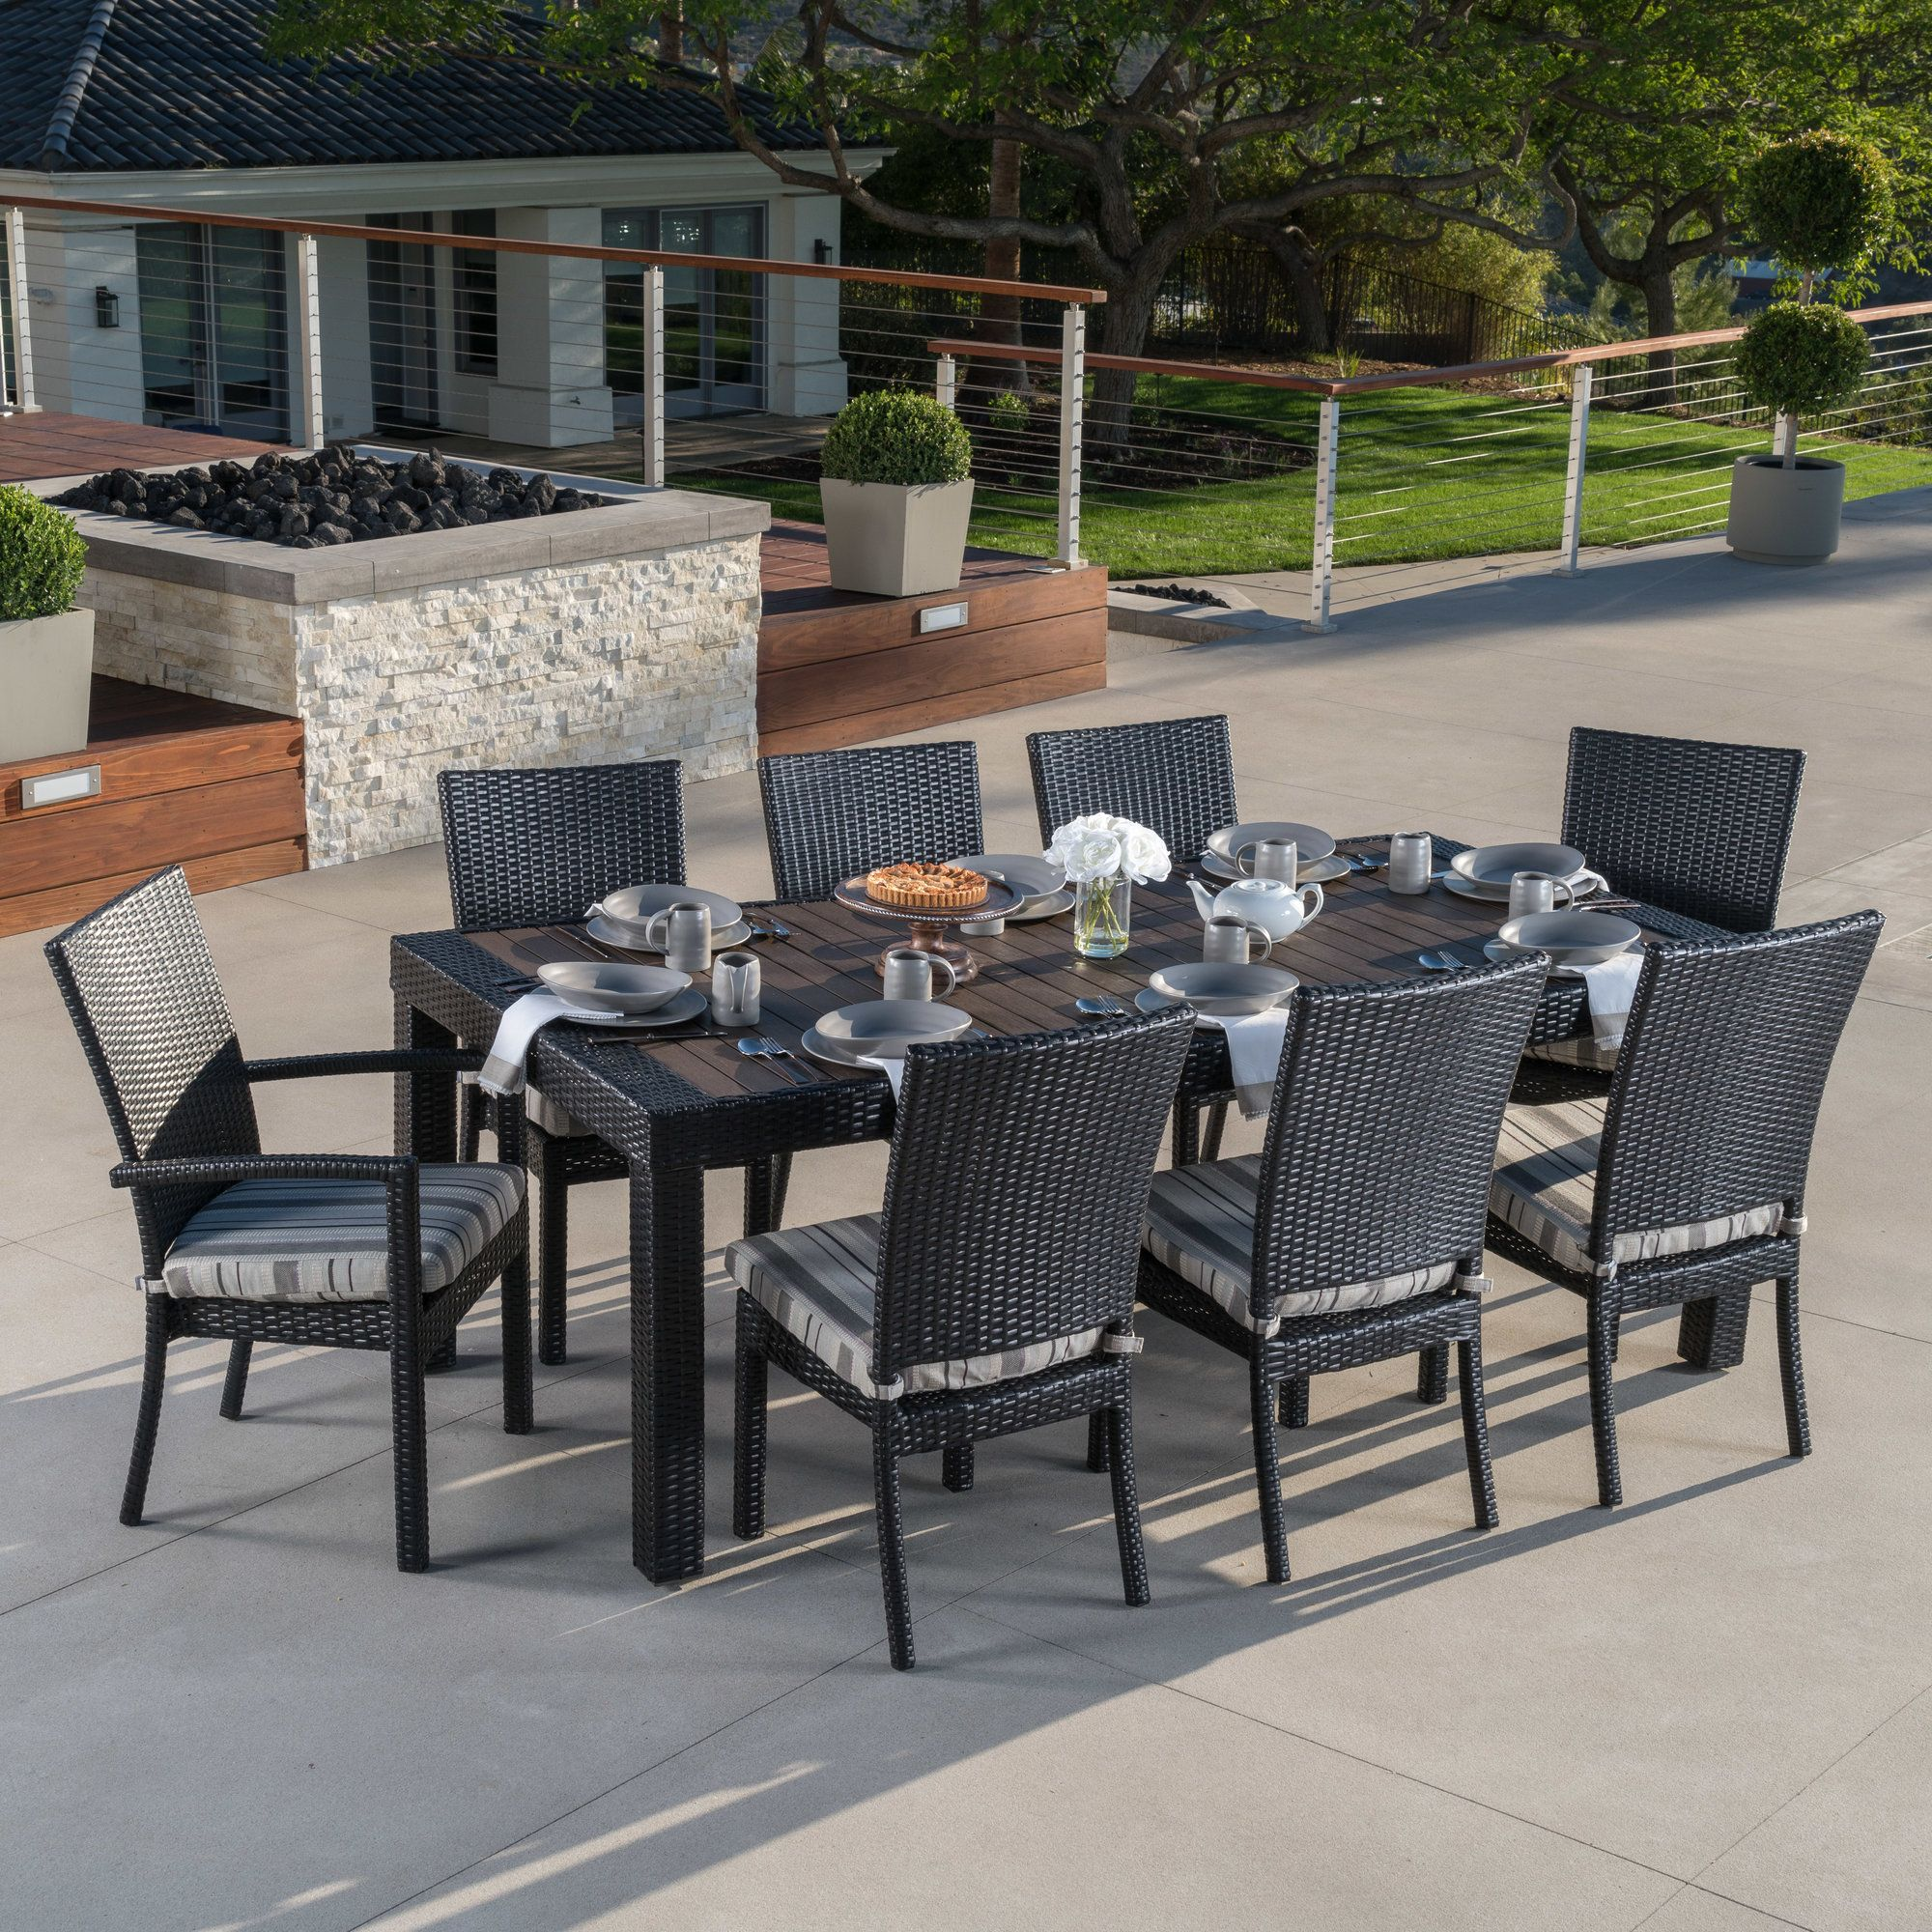 8f5cc2605e865 Evansville 9 Piece Outdoor Dining Set with Cushion